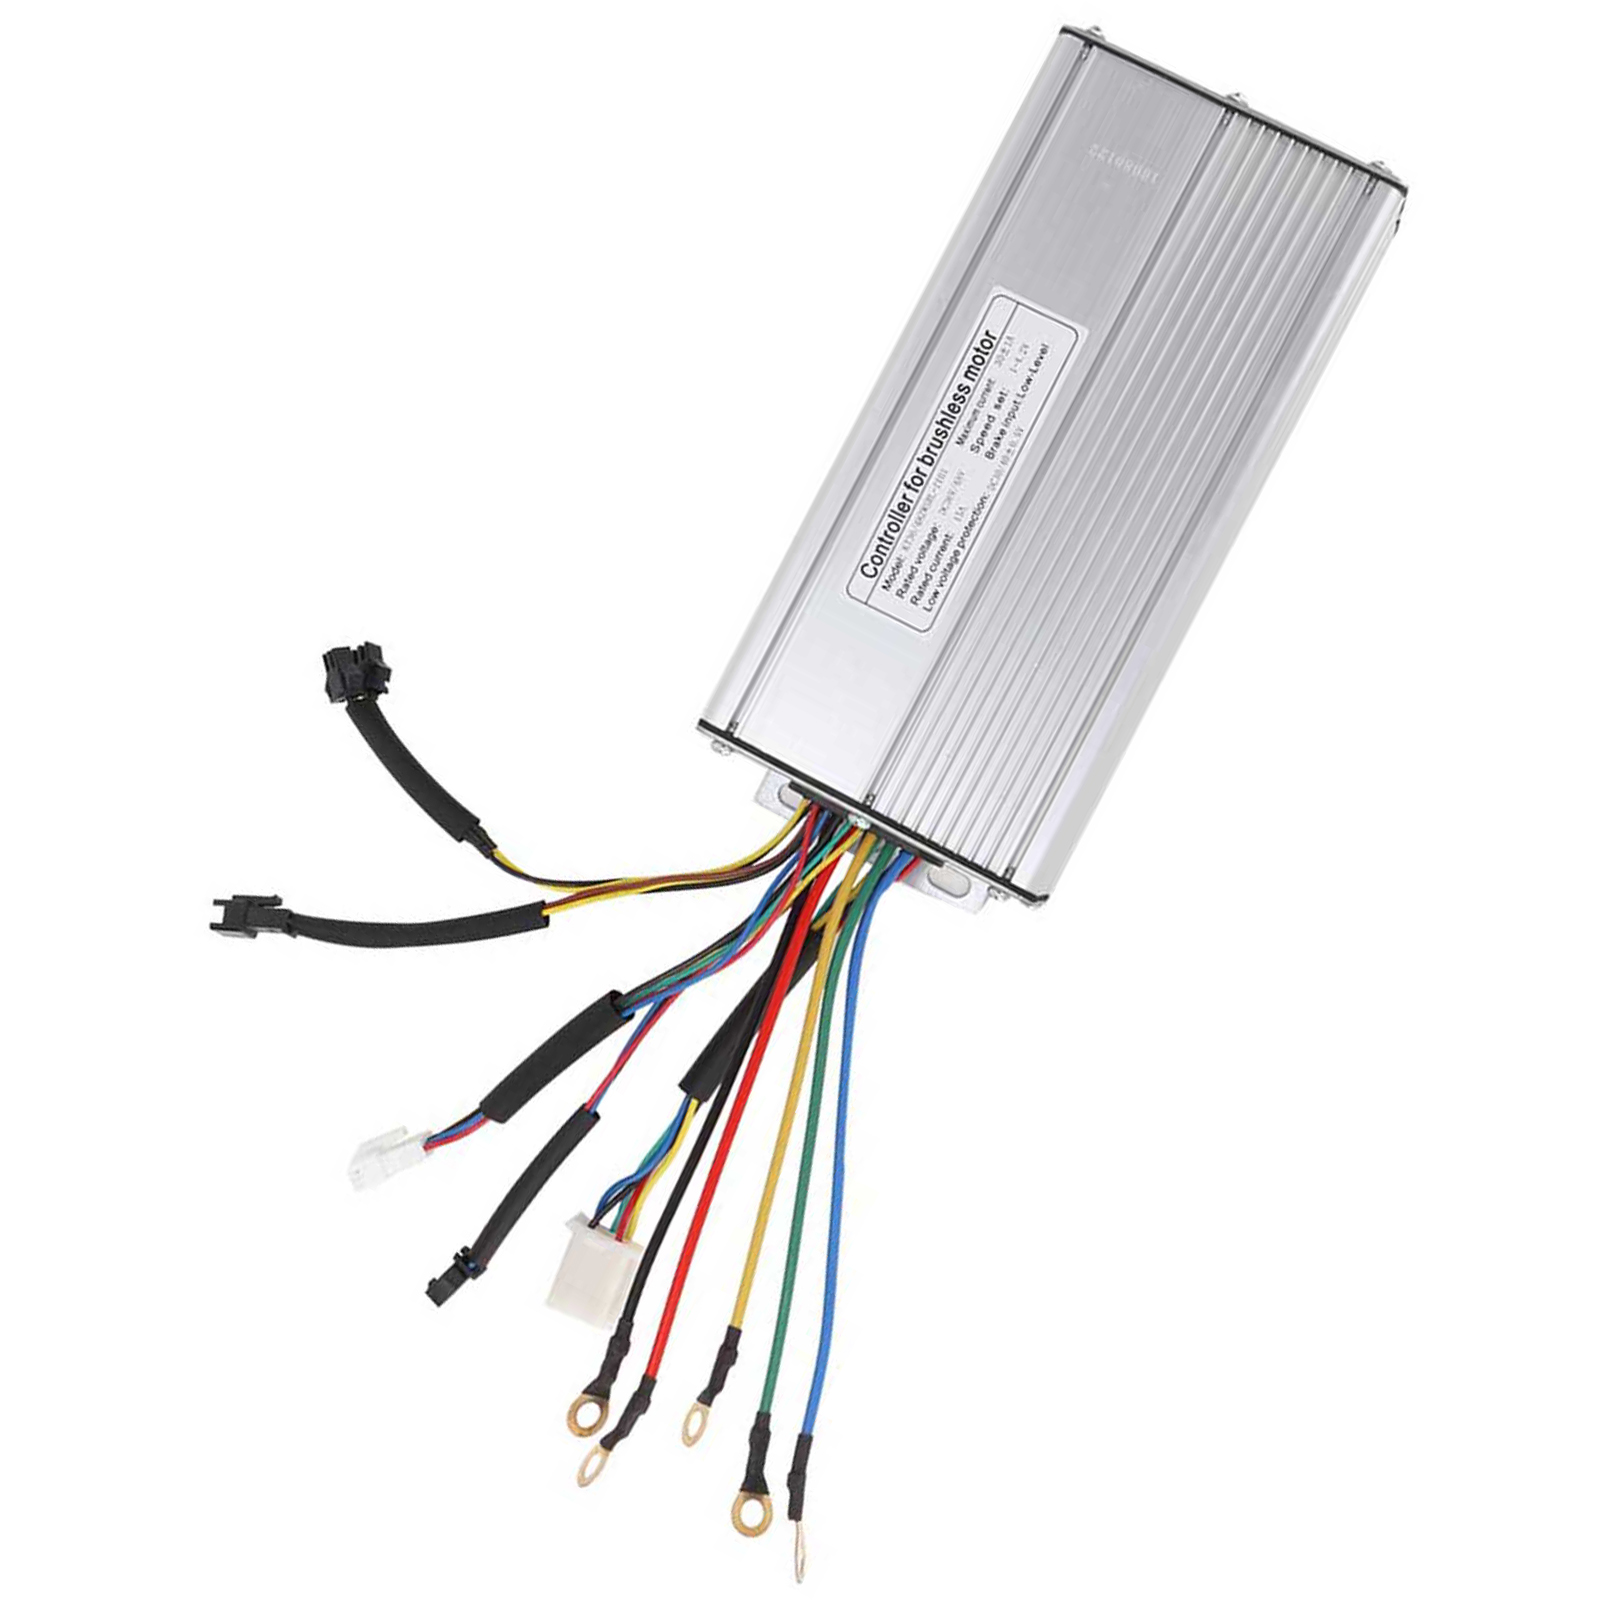 24V-36V-48V-Electric-Bicycle-Bike-Scooter-Brushless-Motor-Speed-Controller-Kit thumbnail 27